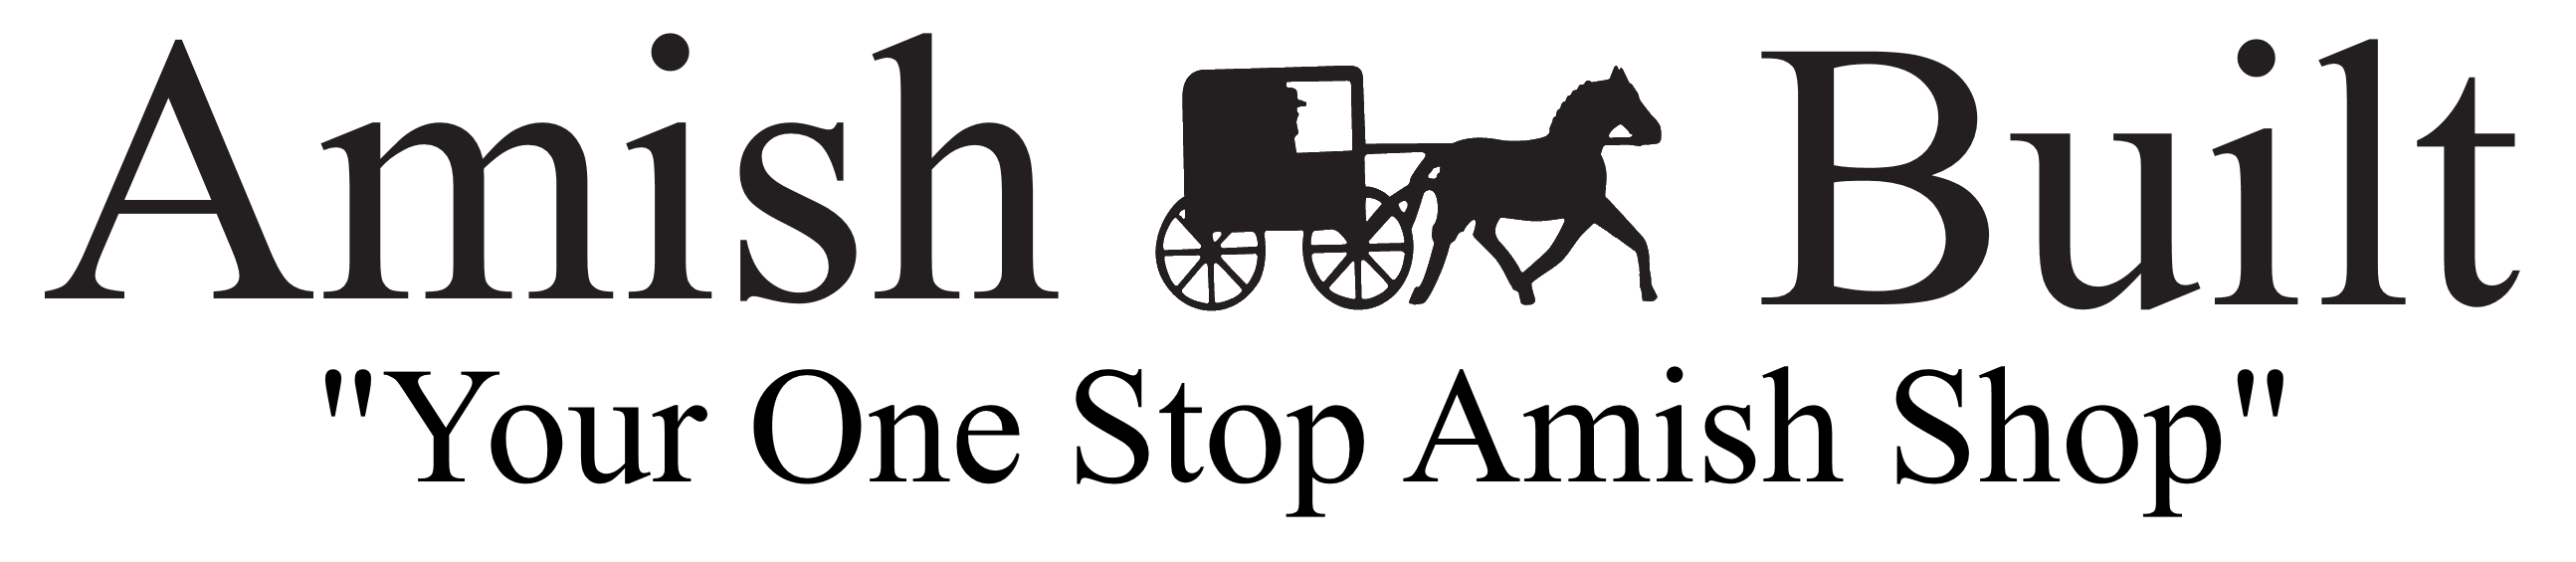 Your One Stop Amish Garage Shop